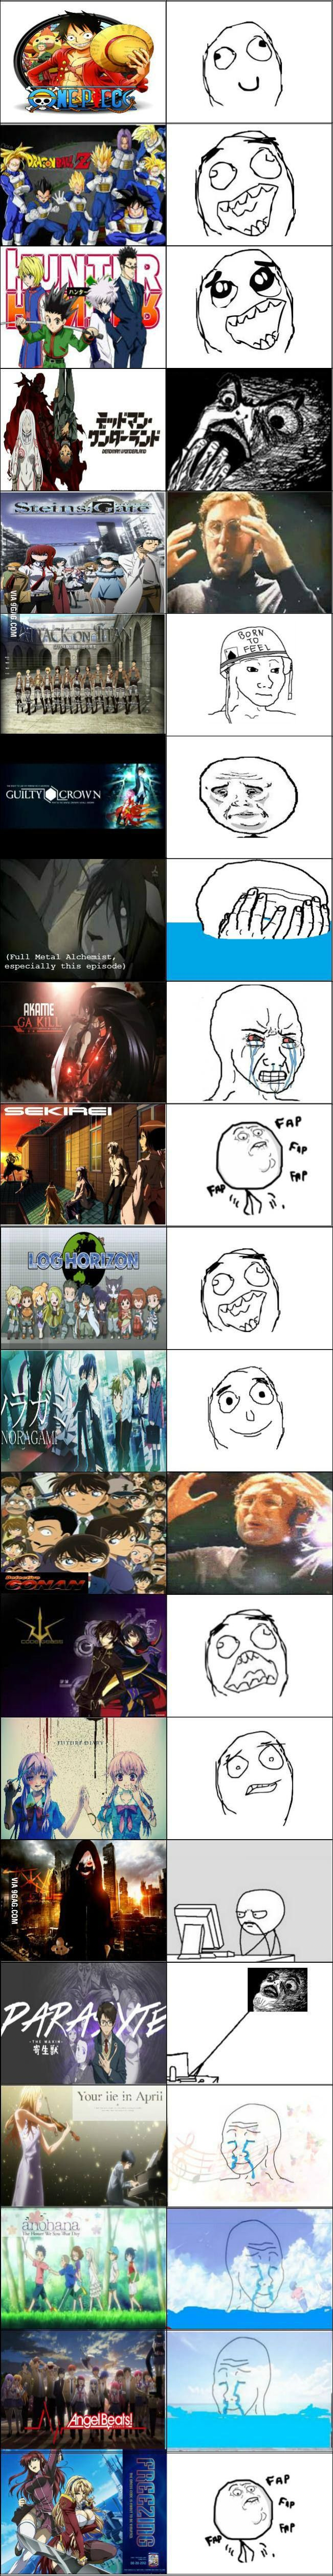 Haha reacting to different anime series. This is too true especially the FMA one!